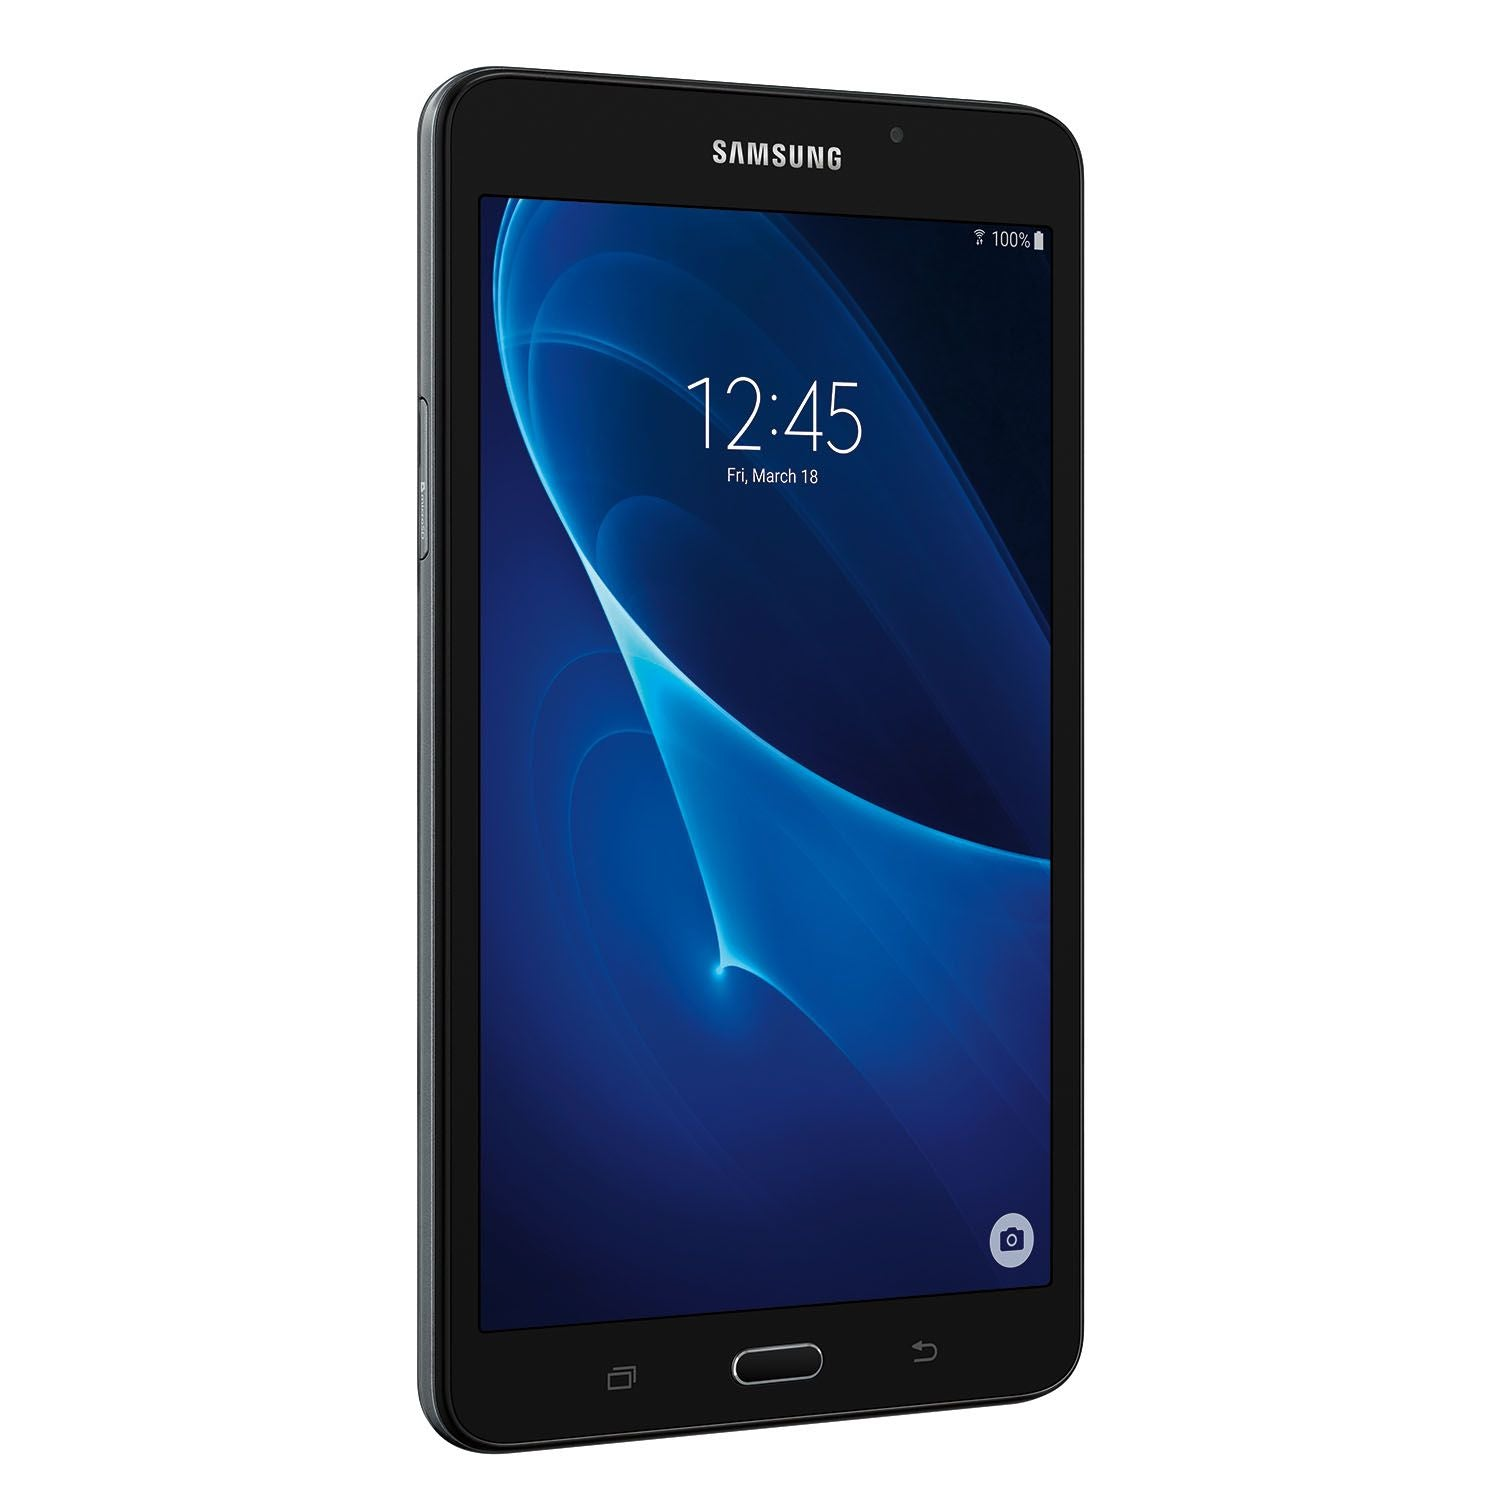 Samsung Galaxy Tab A 8GB Wi-Fi Tablet  SM-T280NZKMXAR with 16GB MicroSD Black